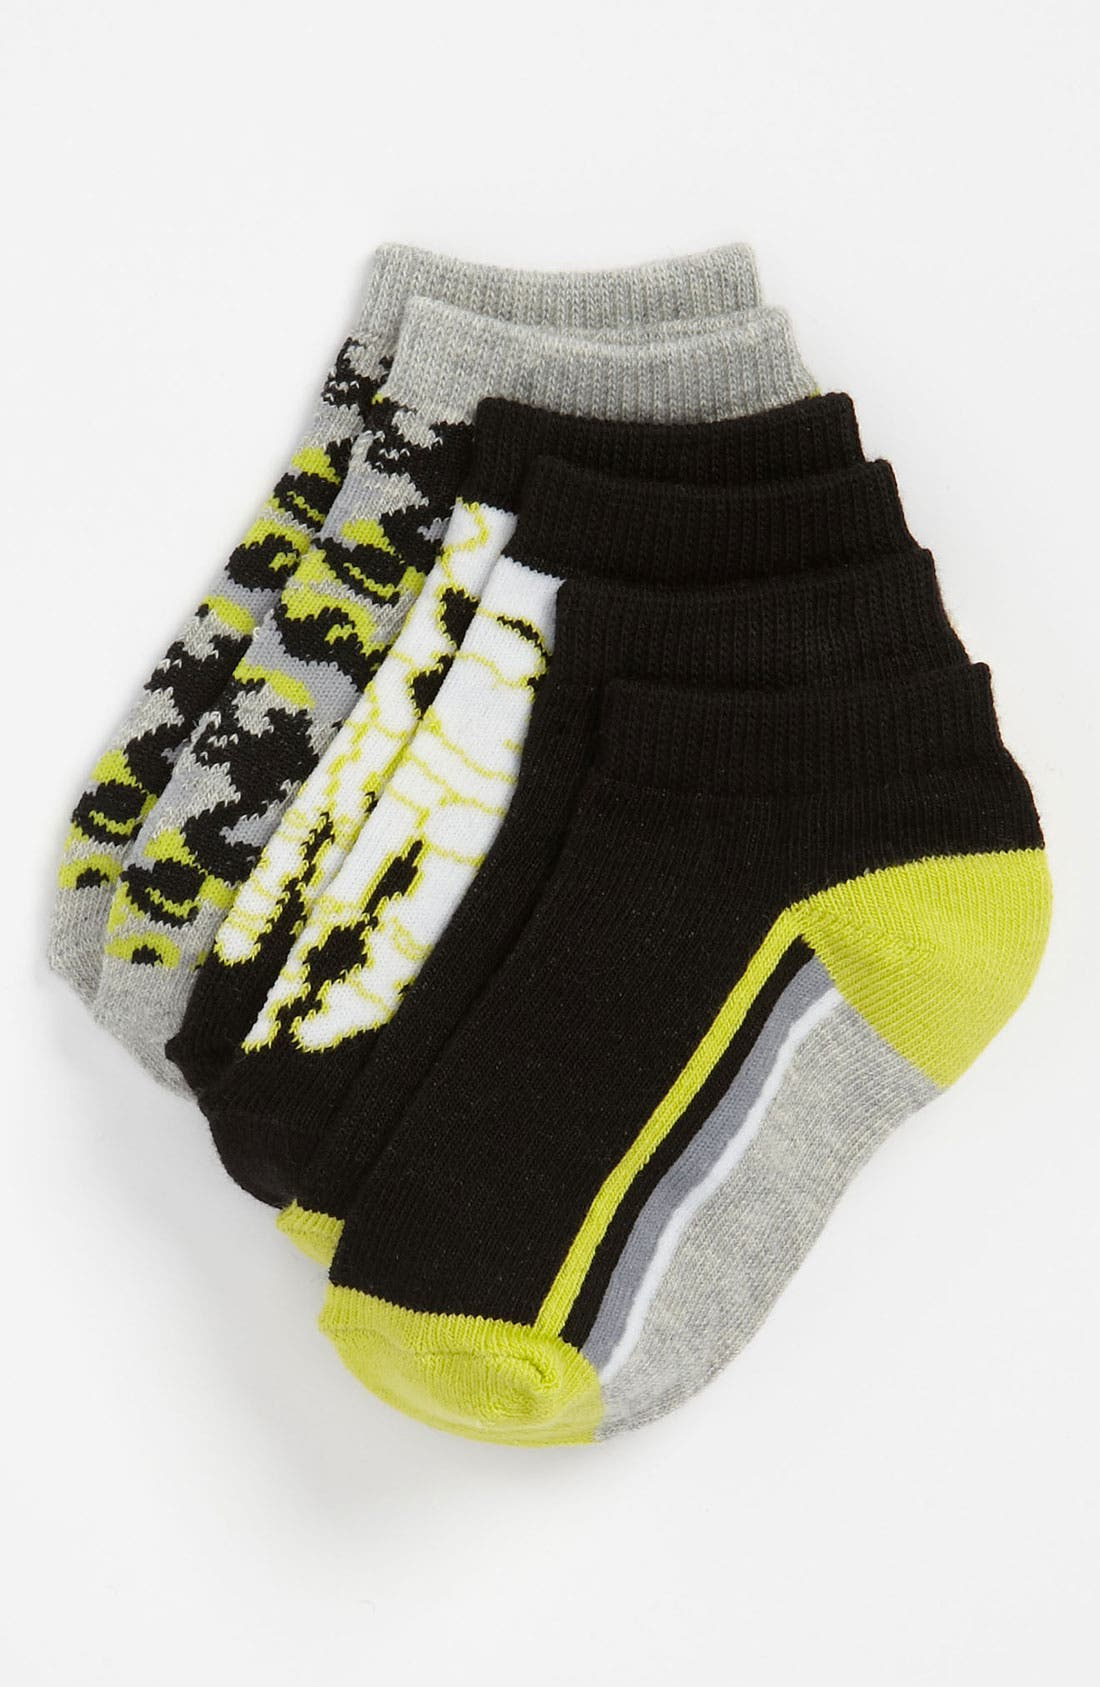 Alternate Image 1 Selected - Nordstrom 'Crossbones' Socks (3-Pack) (Toddler, Little Boys & Big Boys)